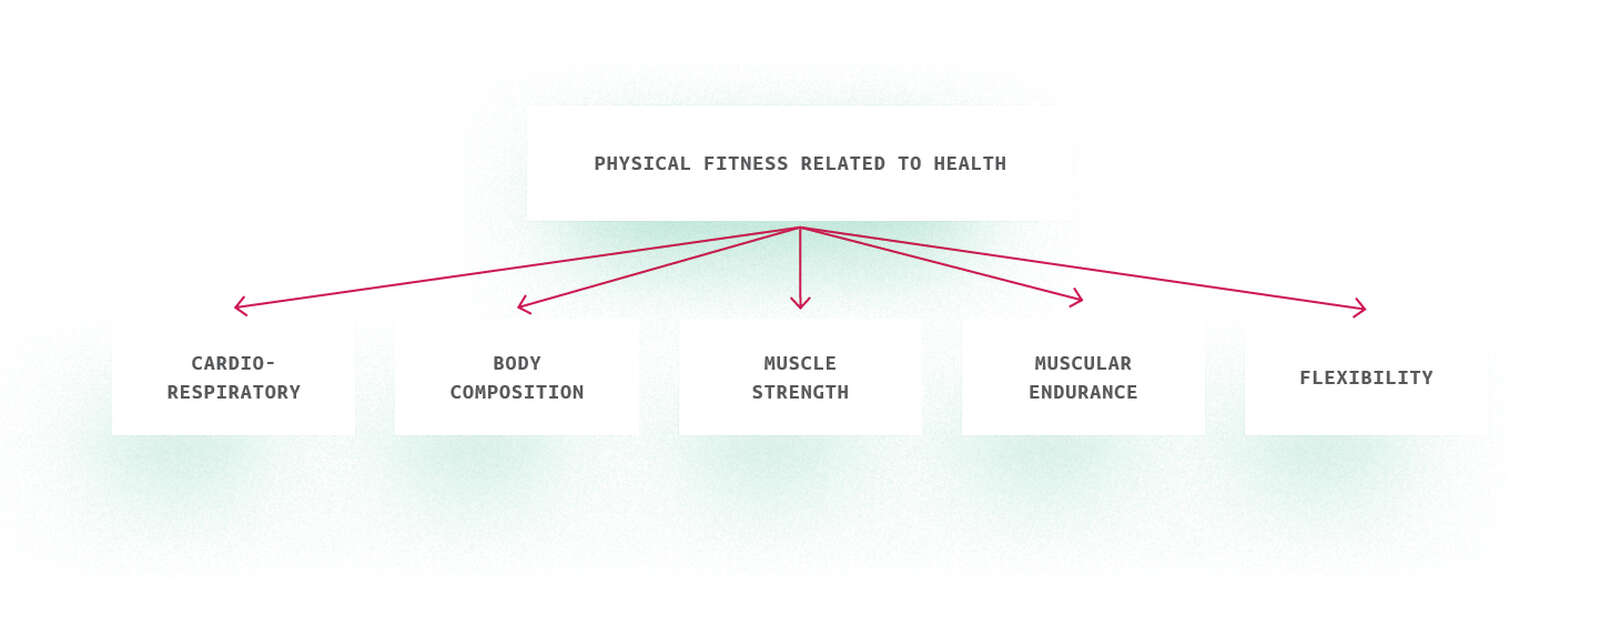 Figure 9: Physical fitness related to health (Source: American College of Sport Medicine)